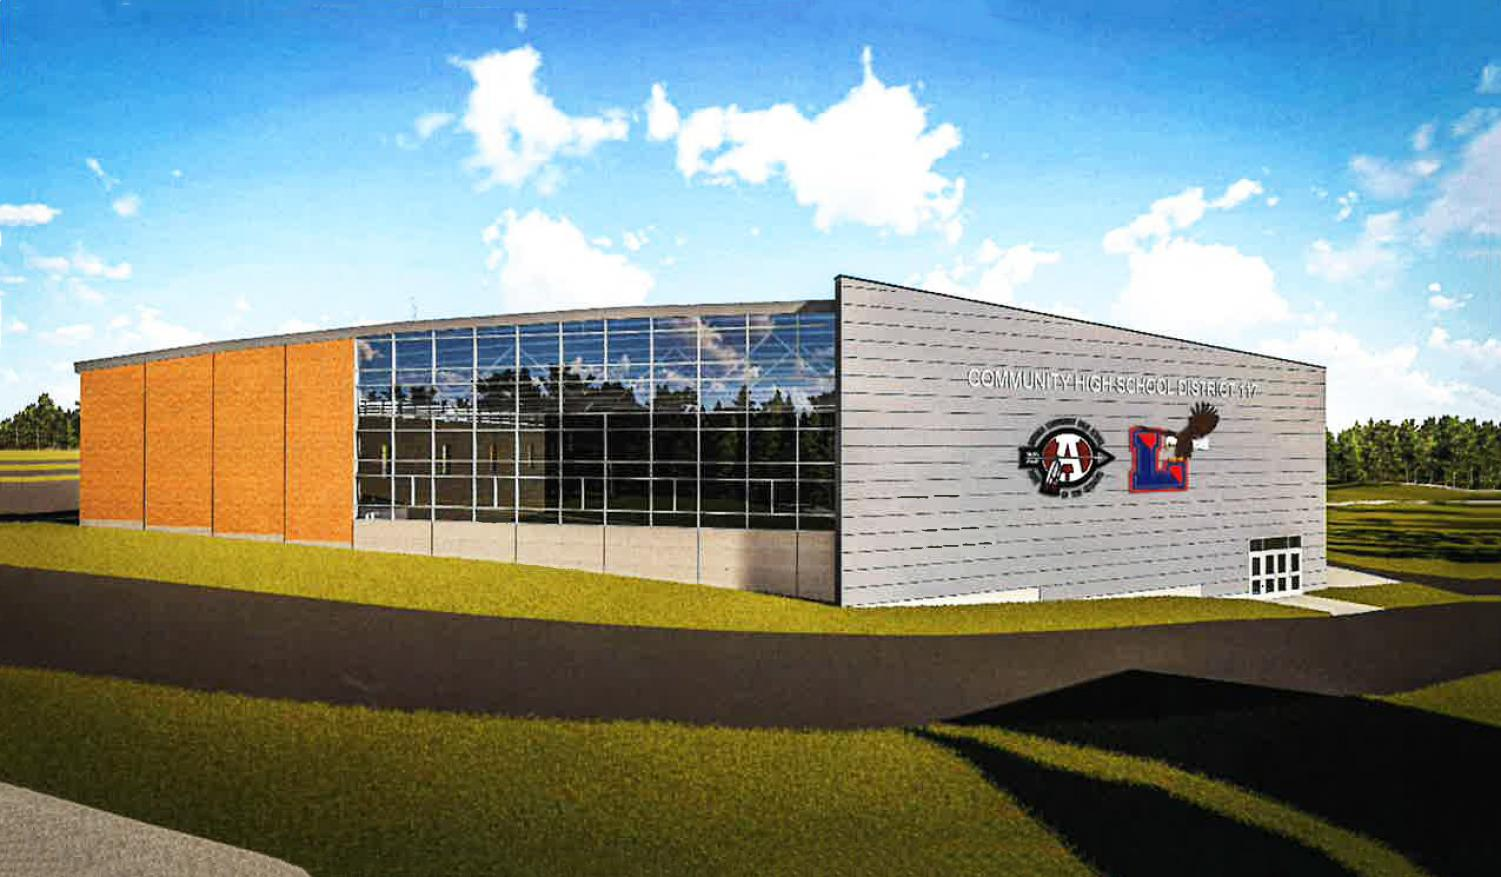 "This design, provided by the District 117 Board, depicts the vision that the district has for the field house. The impressive field house will cost around $22 million, according to the Daily Herald. ""It will probably be one of the top 2nd or 3rd field houses in the state of Illinois,"" Athletic Director Steven Schoenfelder said."